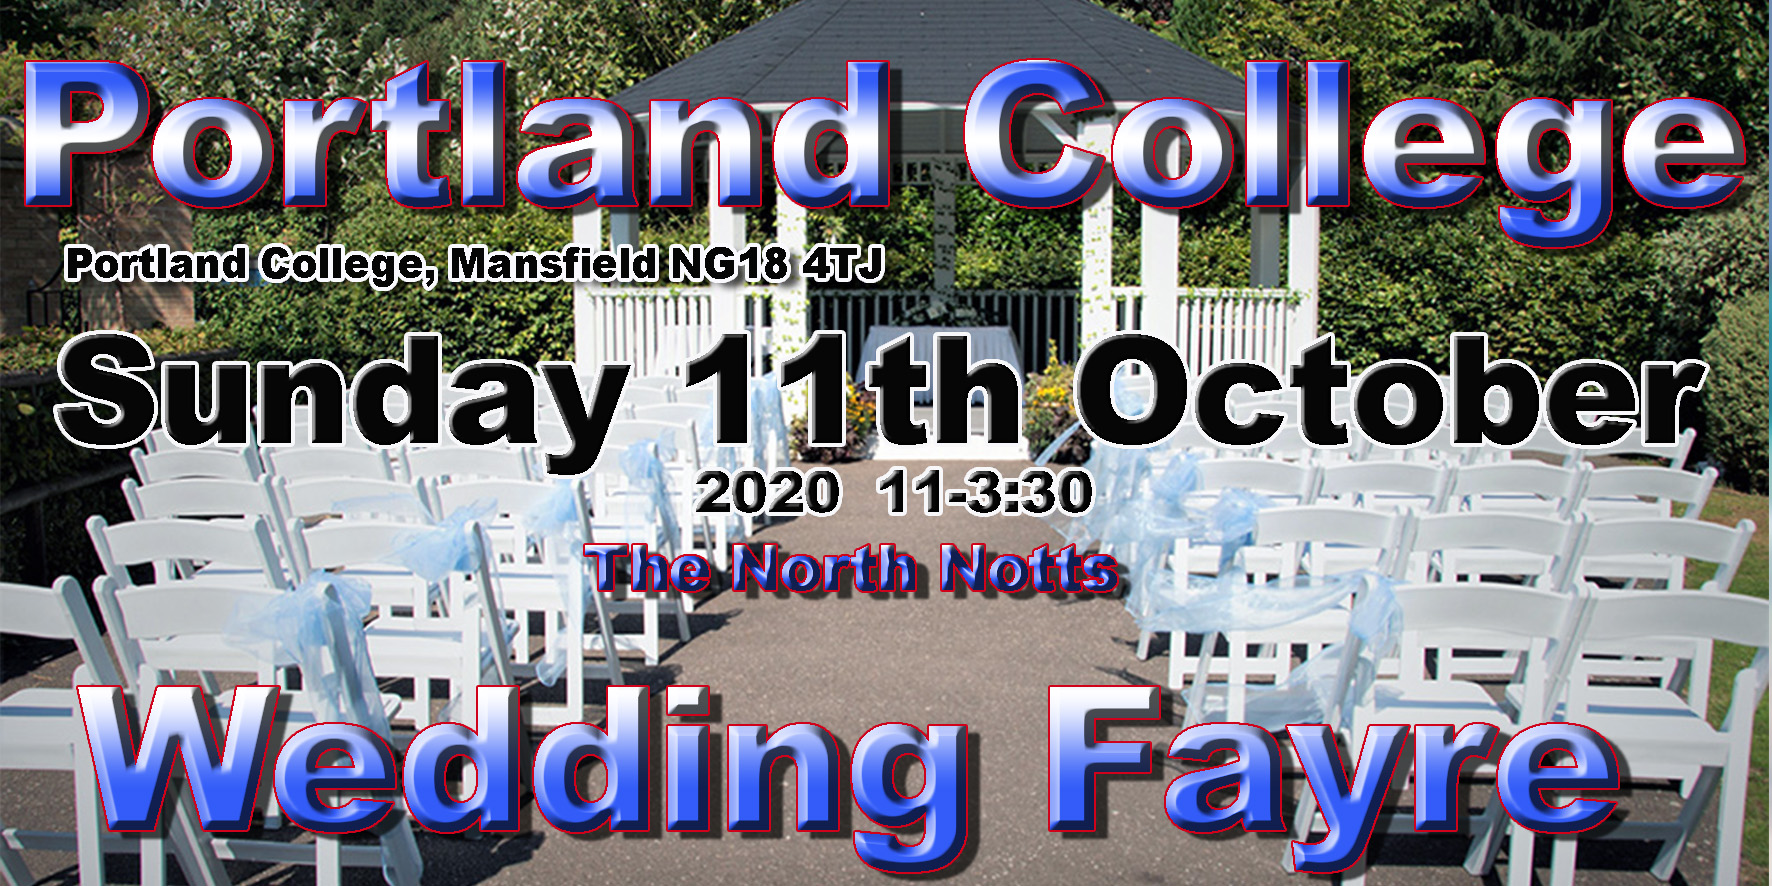 portland college mansfield wedding fayre 2020 3x6 colour